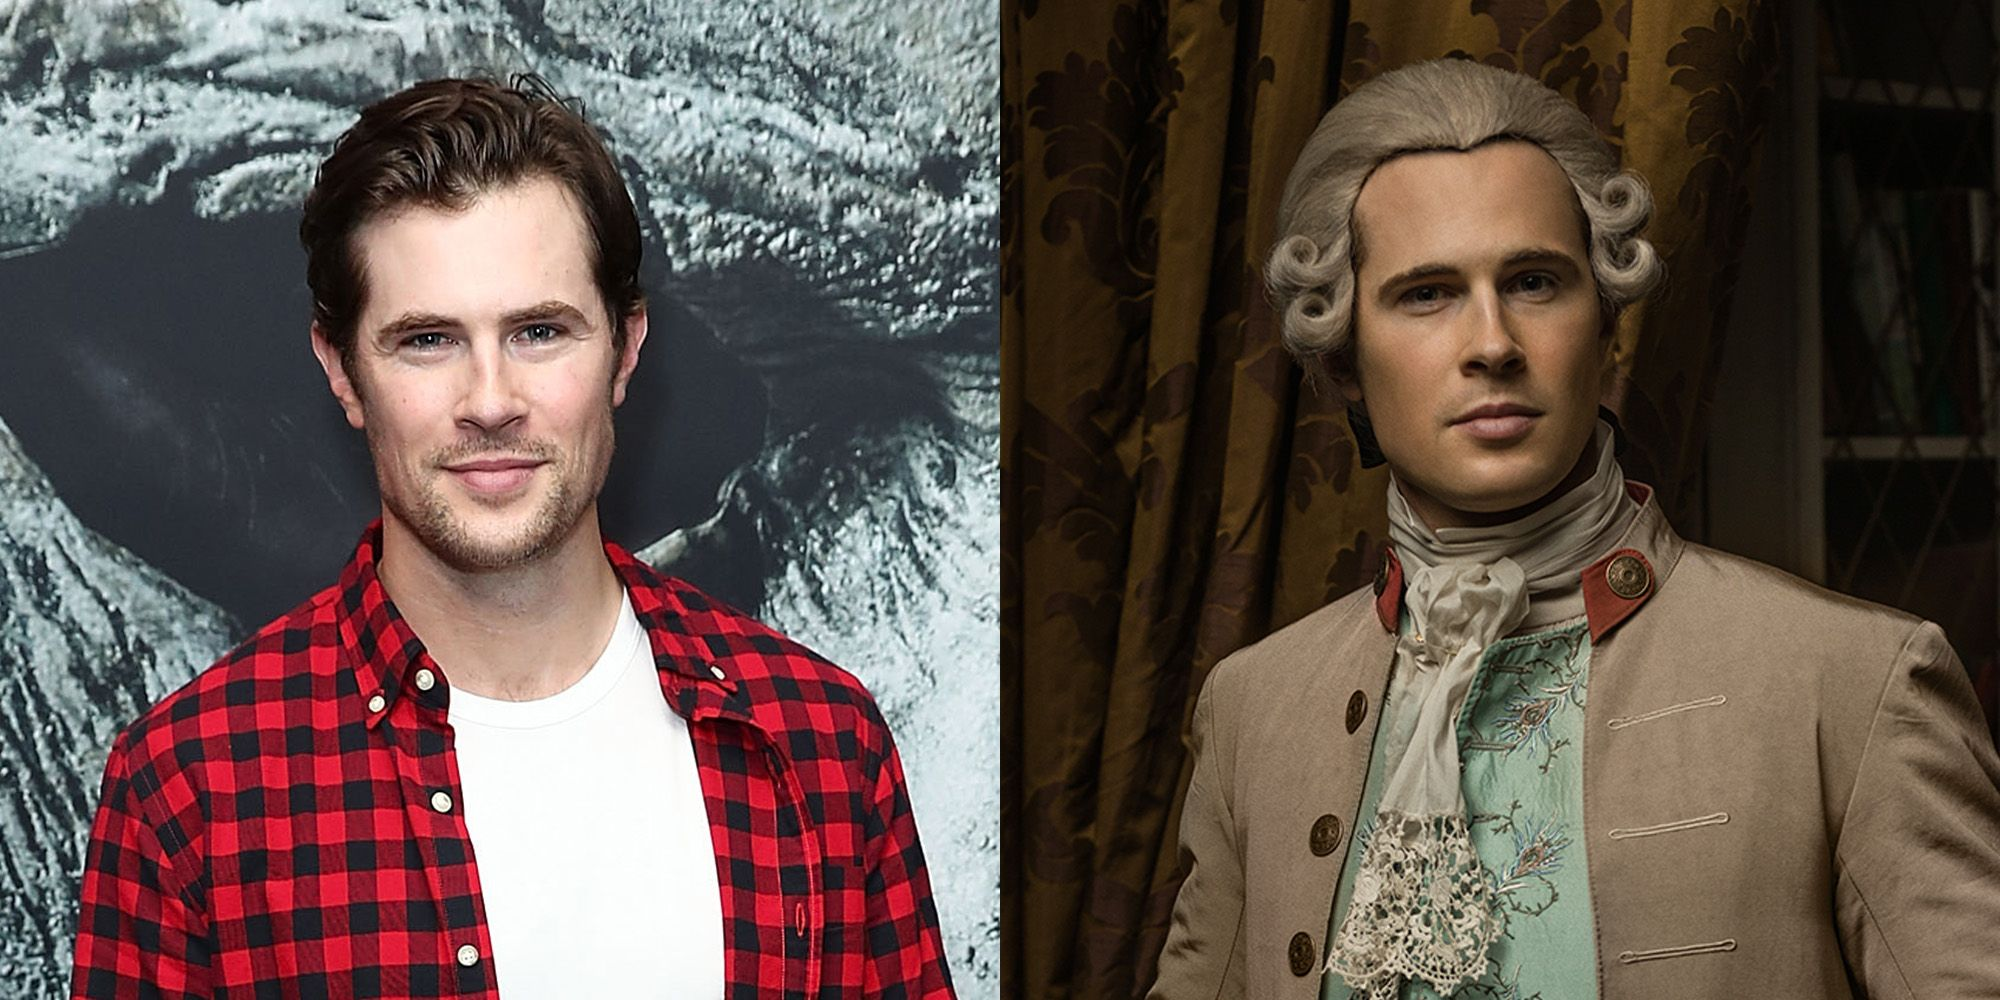 Are the outlander stars dating